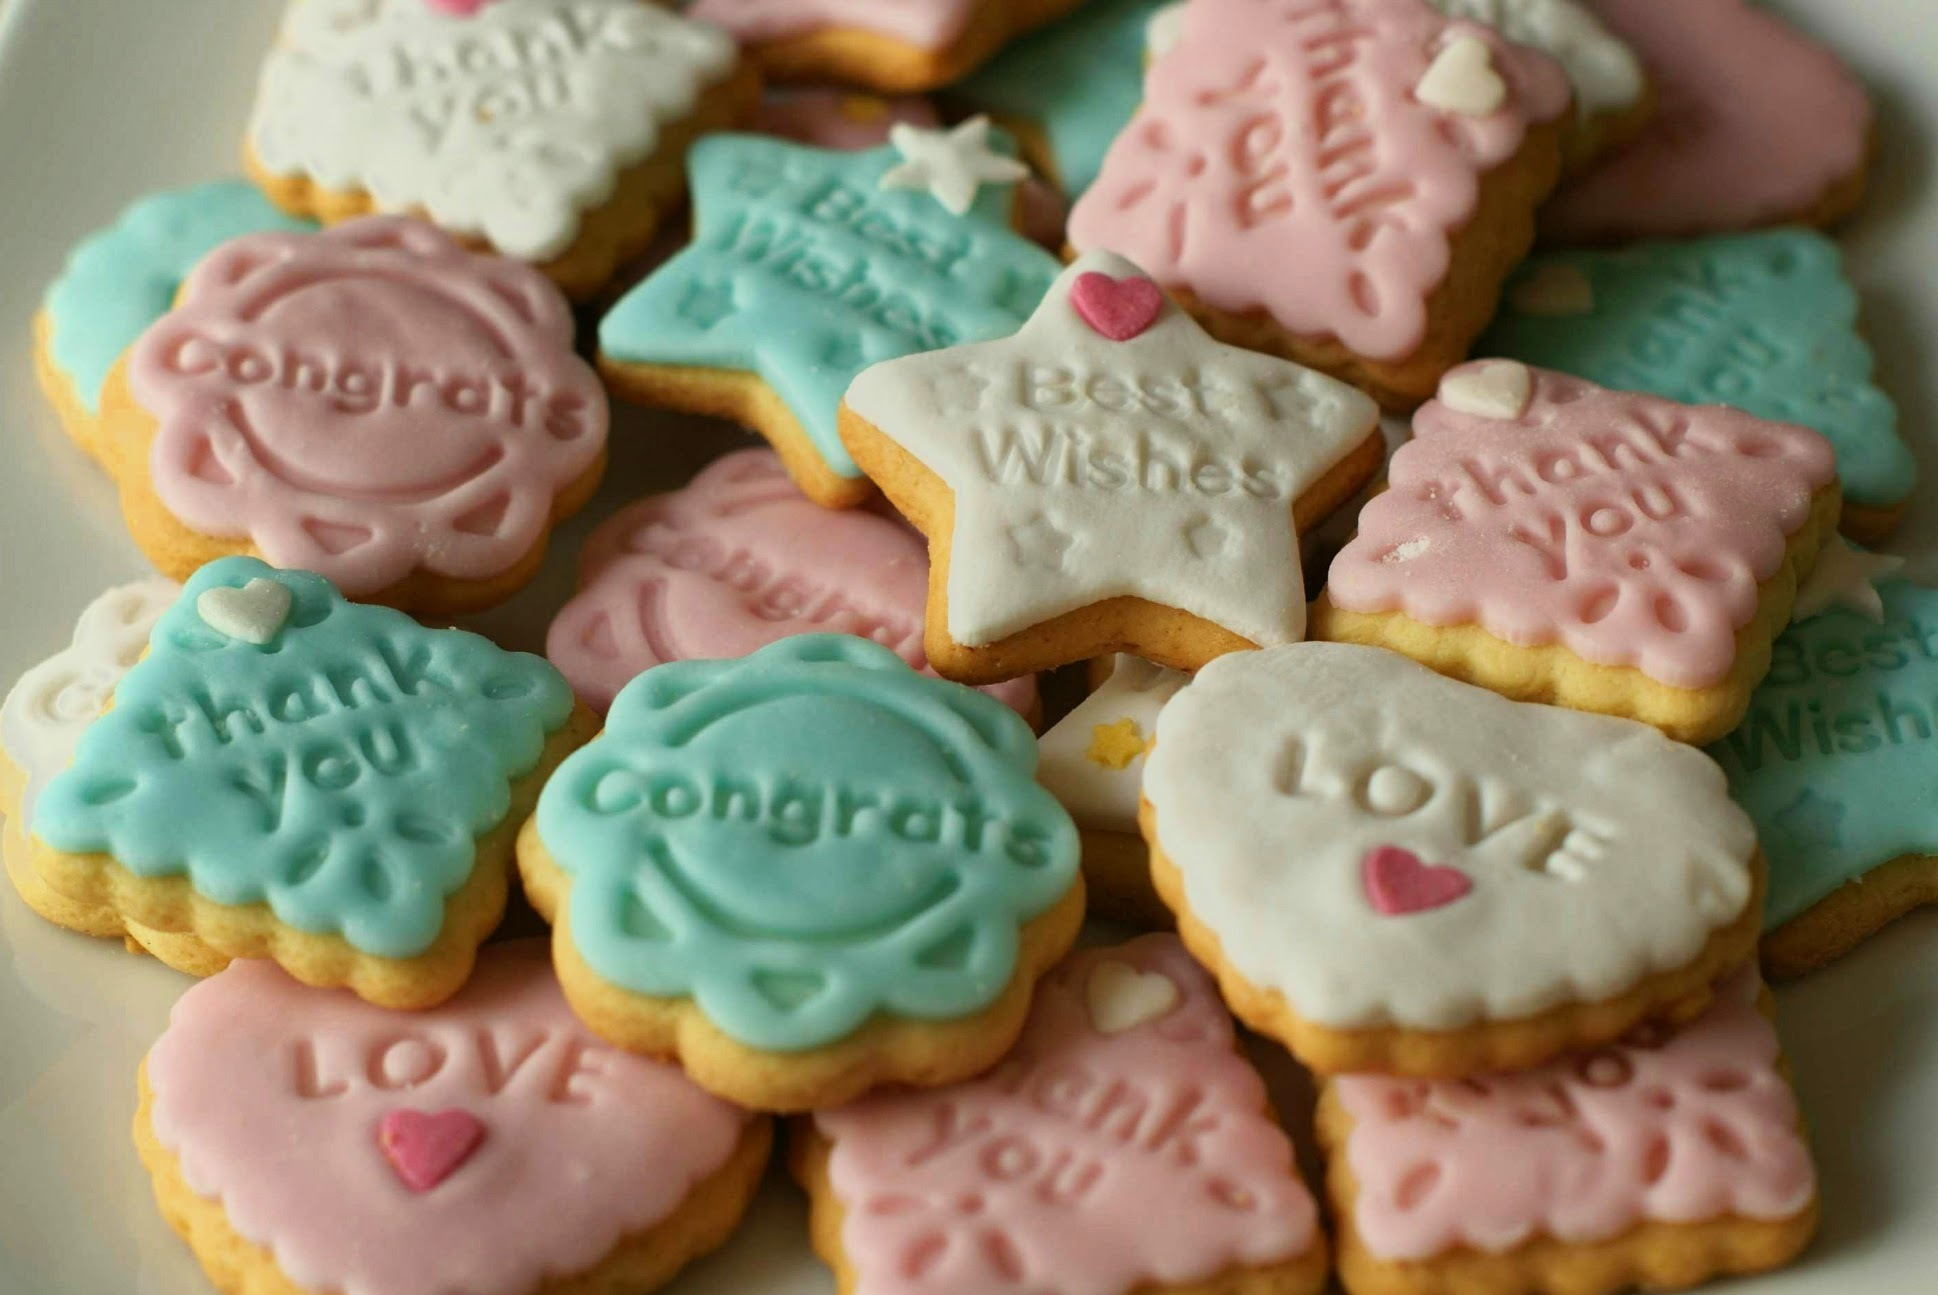 GALLETITAS DECORADAS CON FONDANT